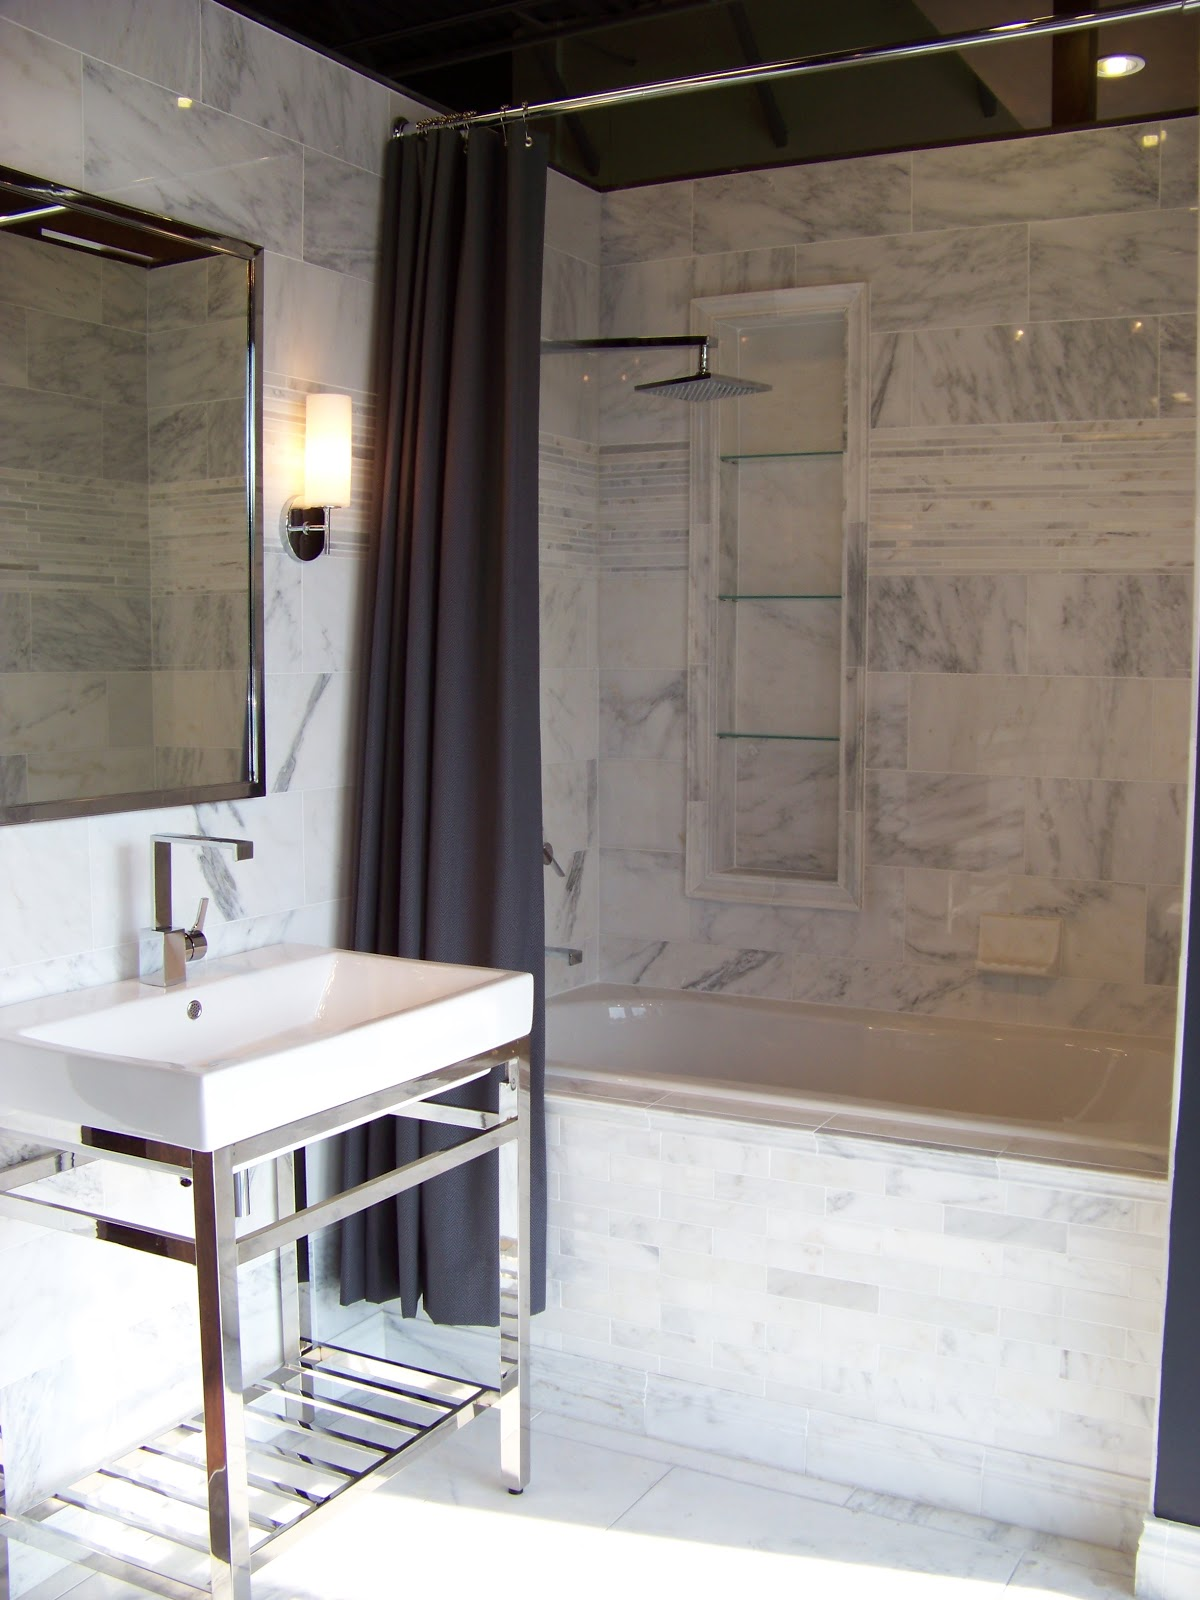 Home Decor Budgetista: Bathroom Inspiration